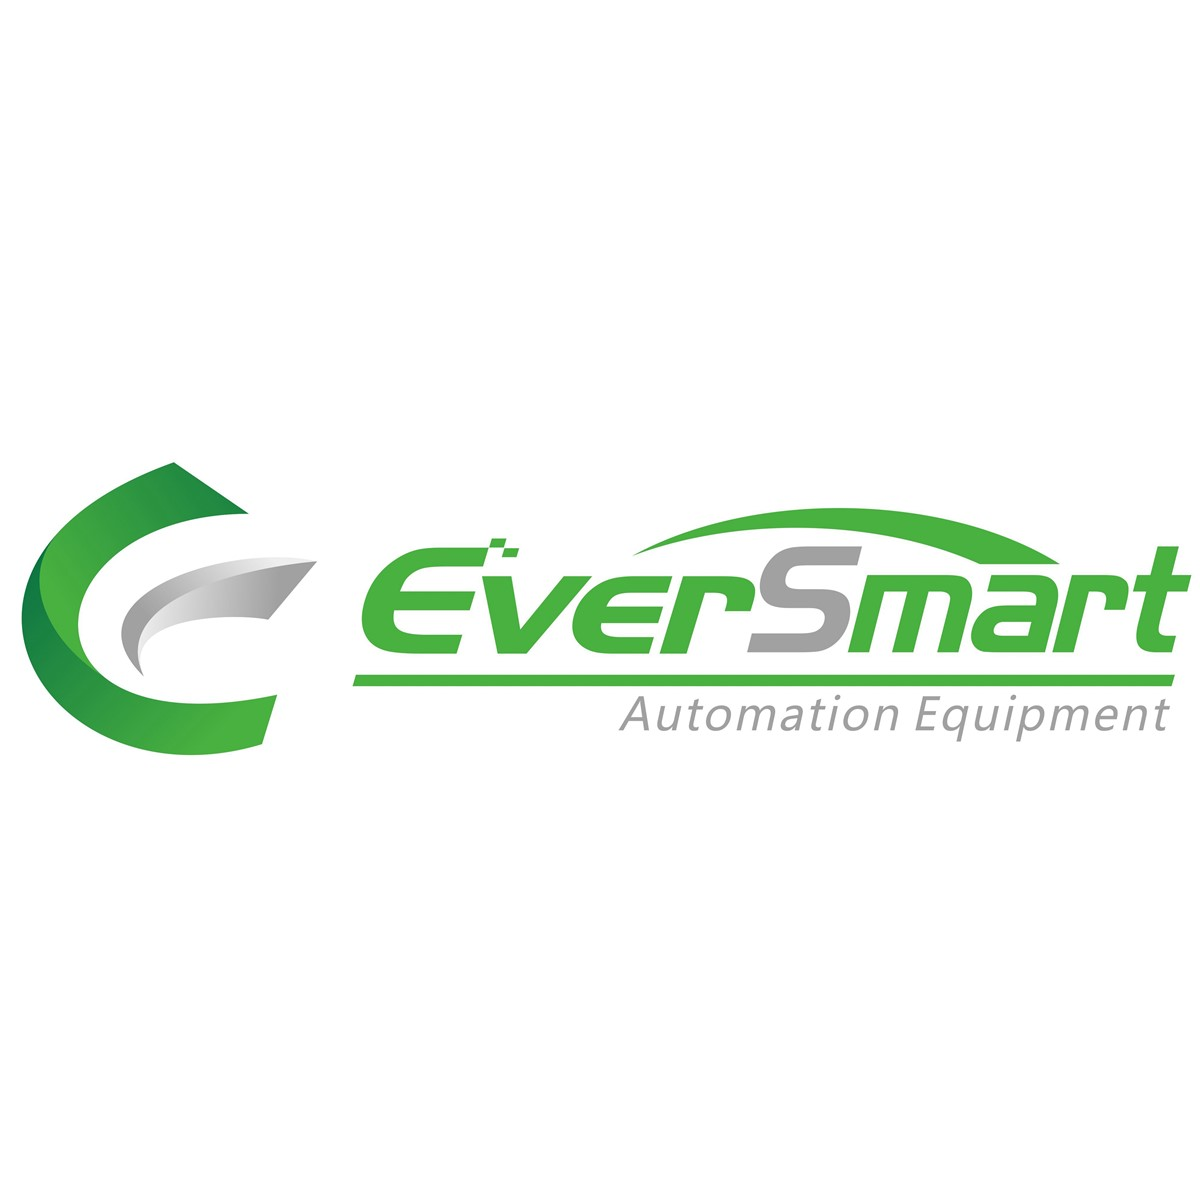 Eversmart Food Machinery Limited